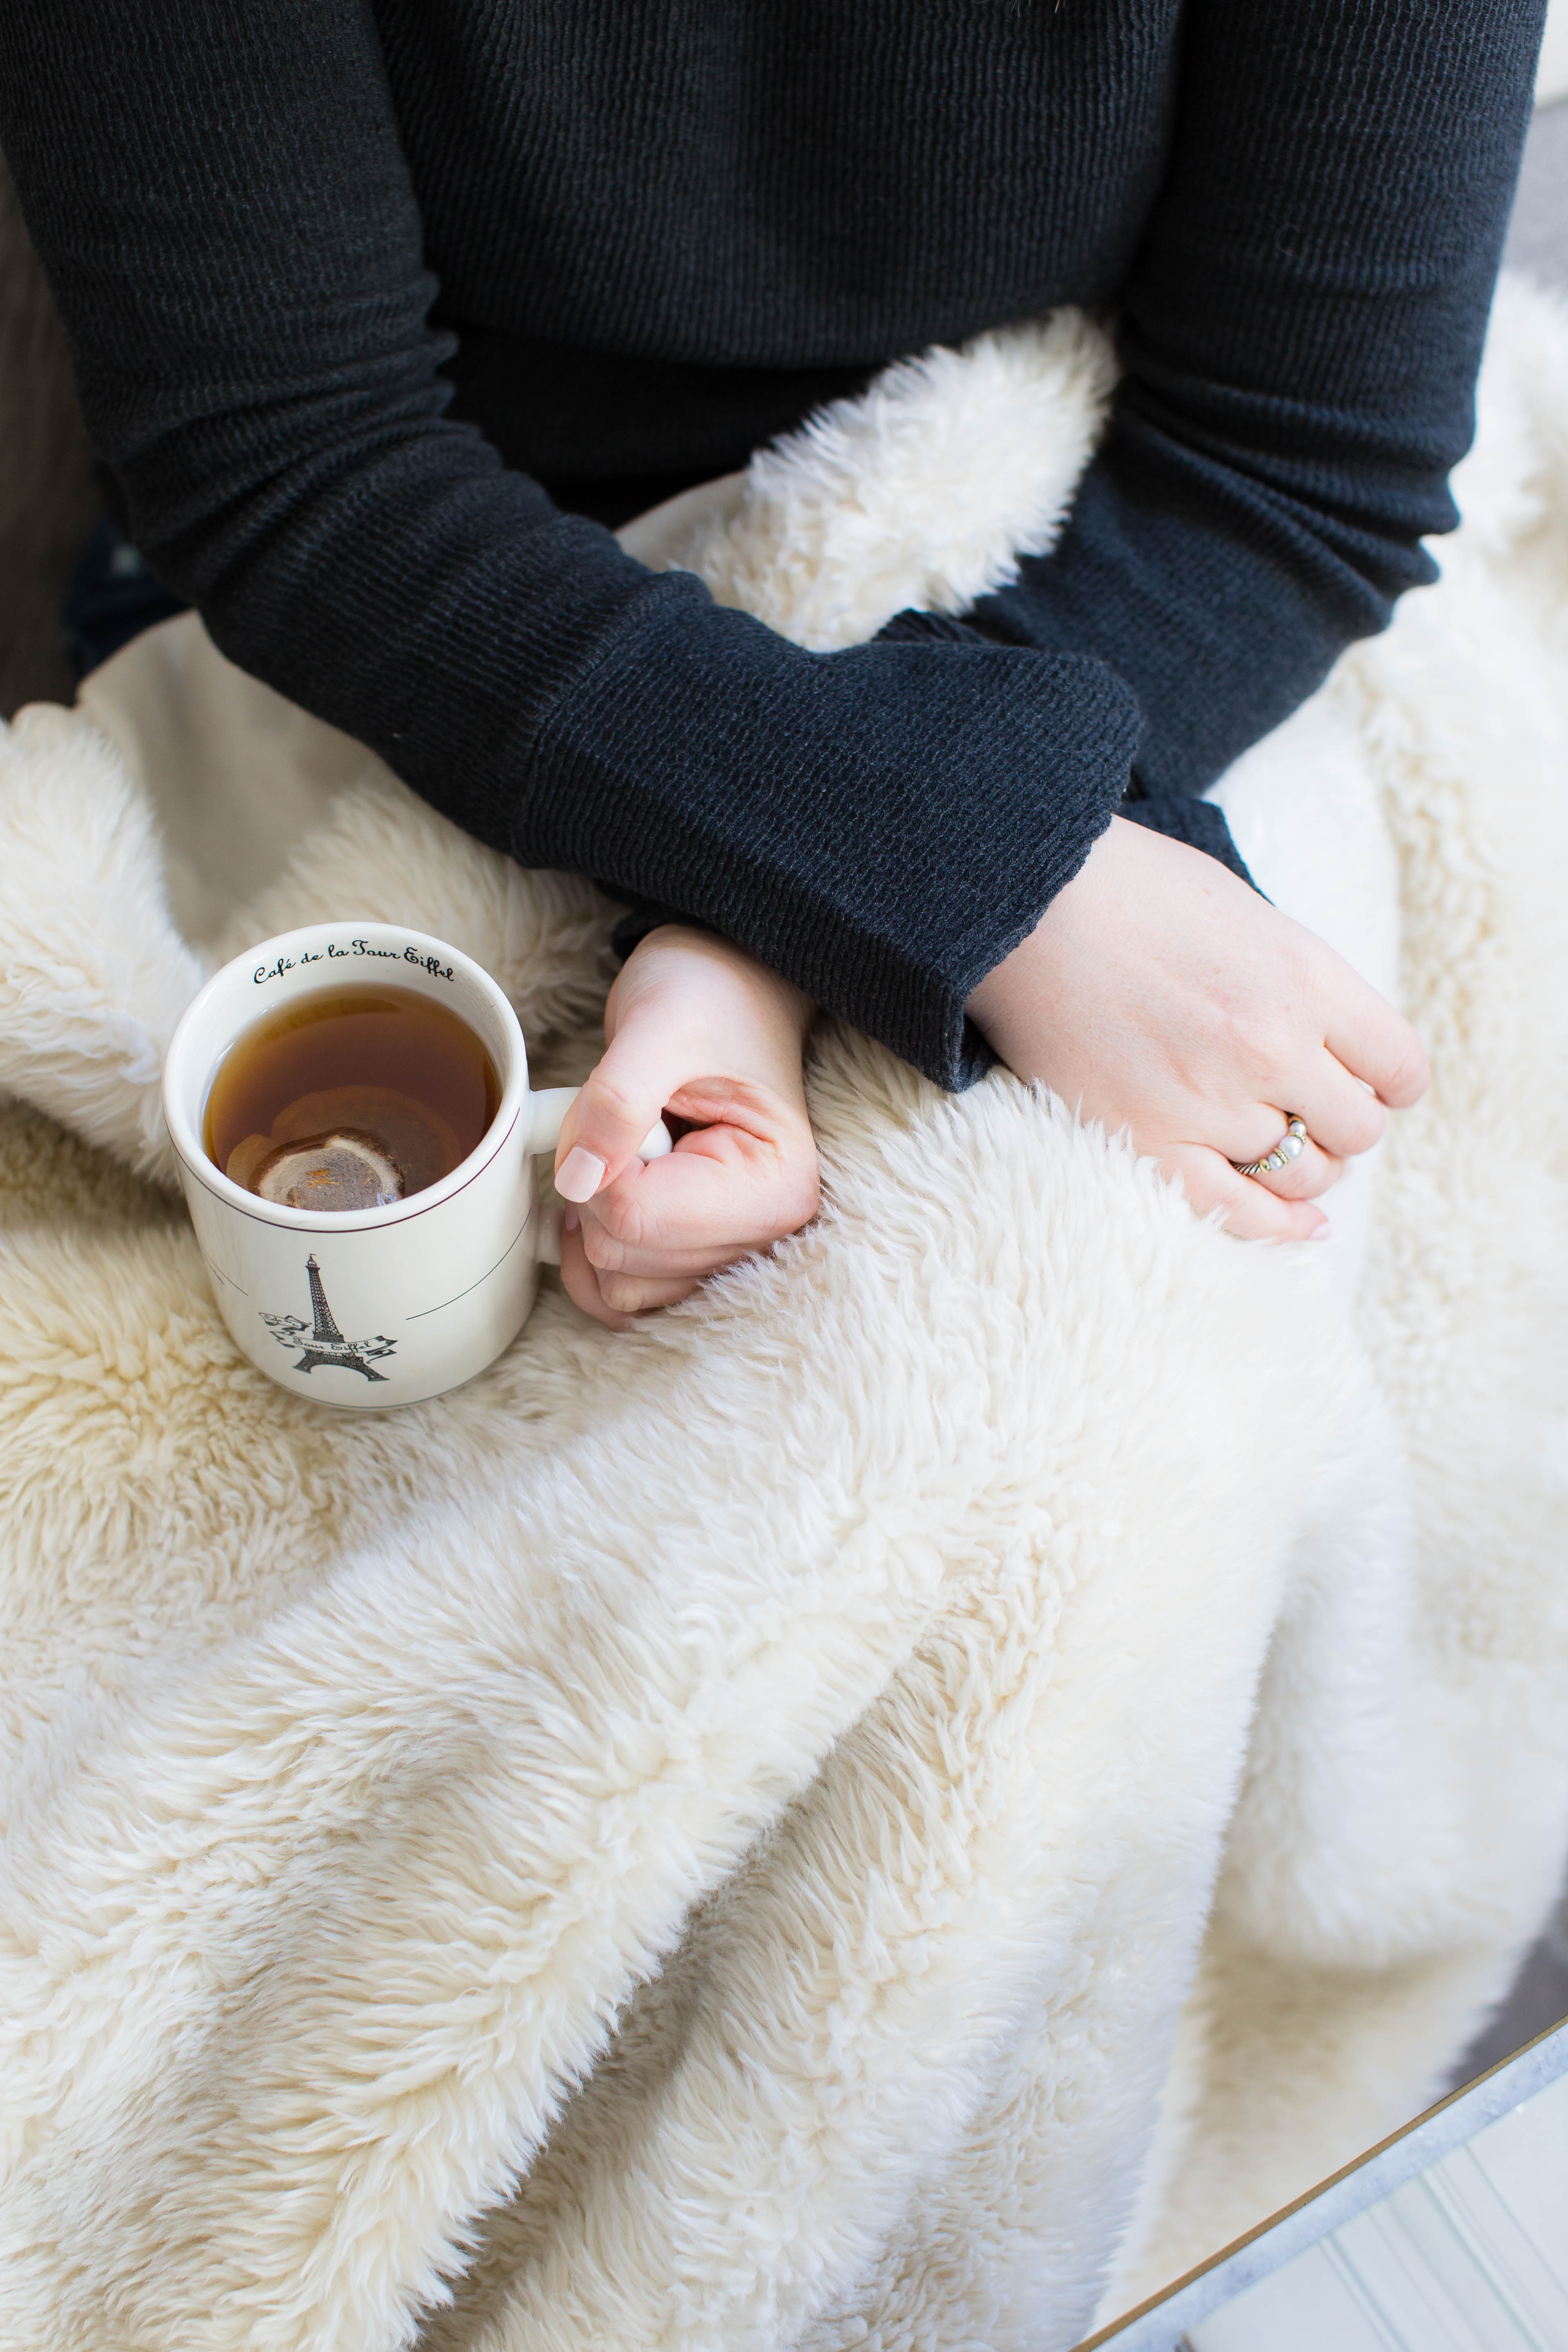 Tips for beating the winter woes